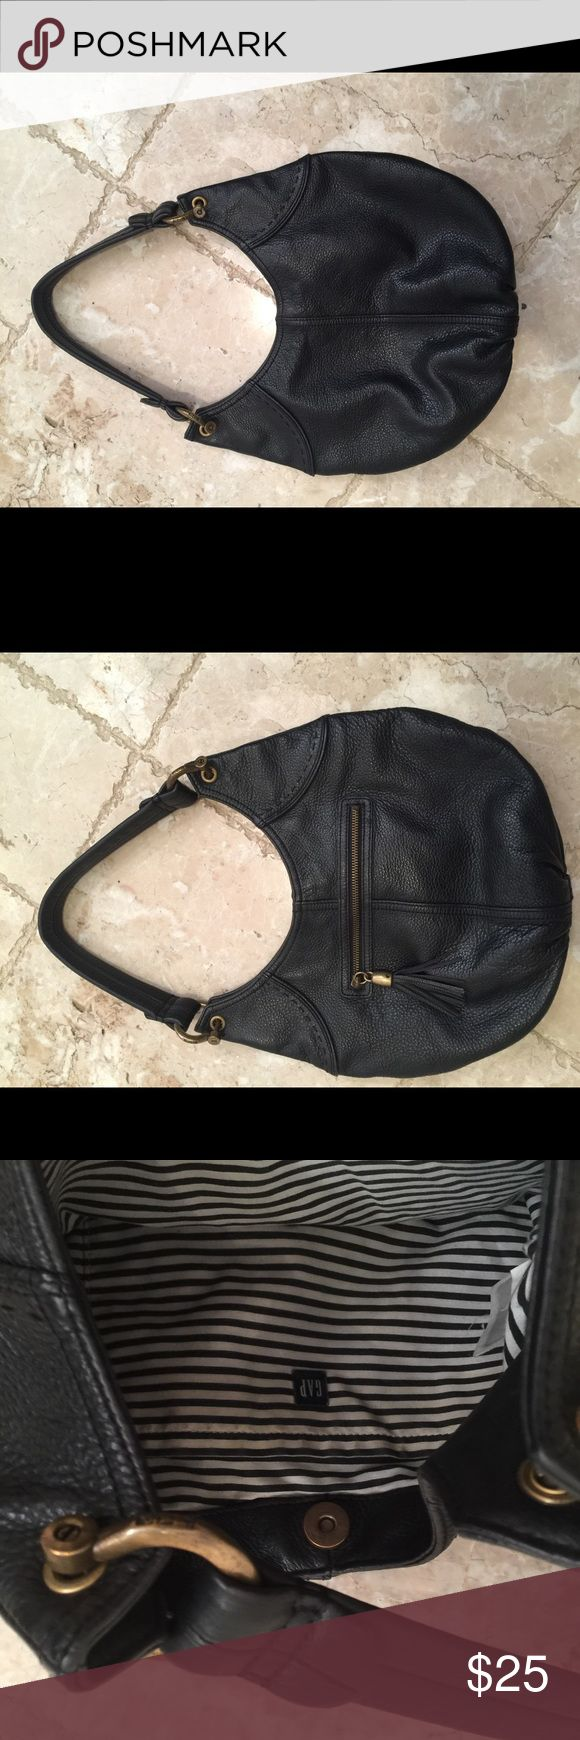 Gap handbag Black leather Gap hand bag. Great condition. GAP Bags Shoulder Bags